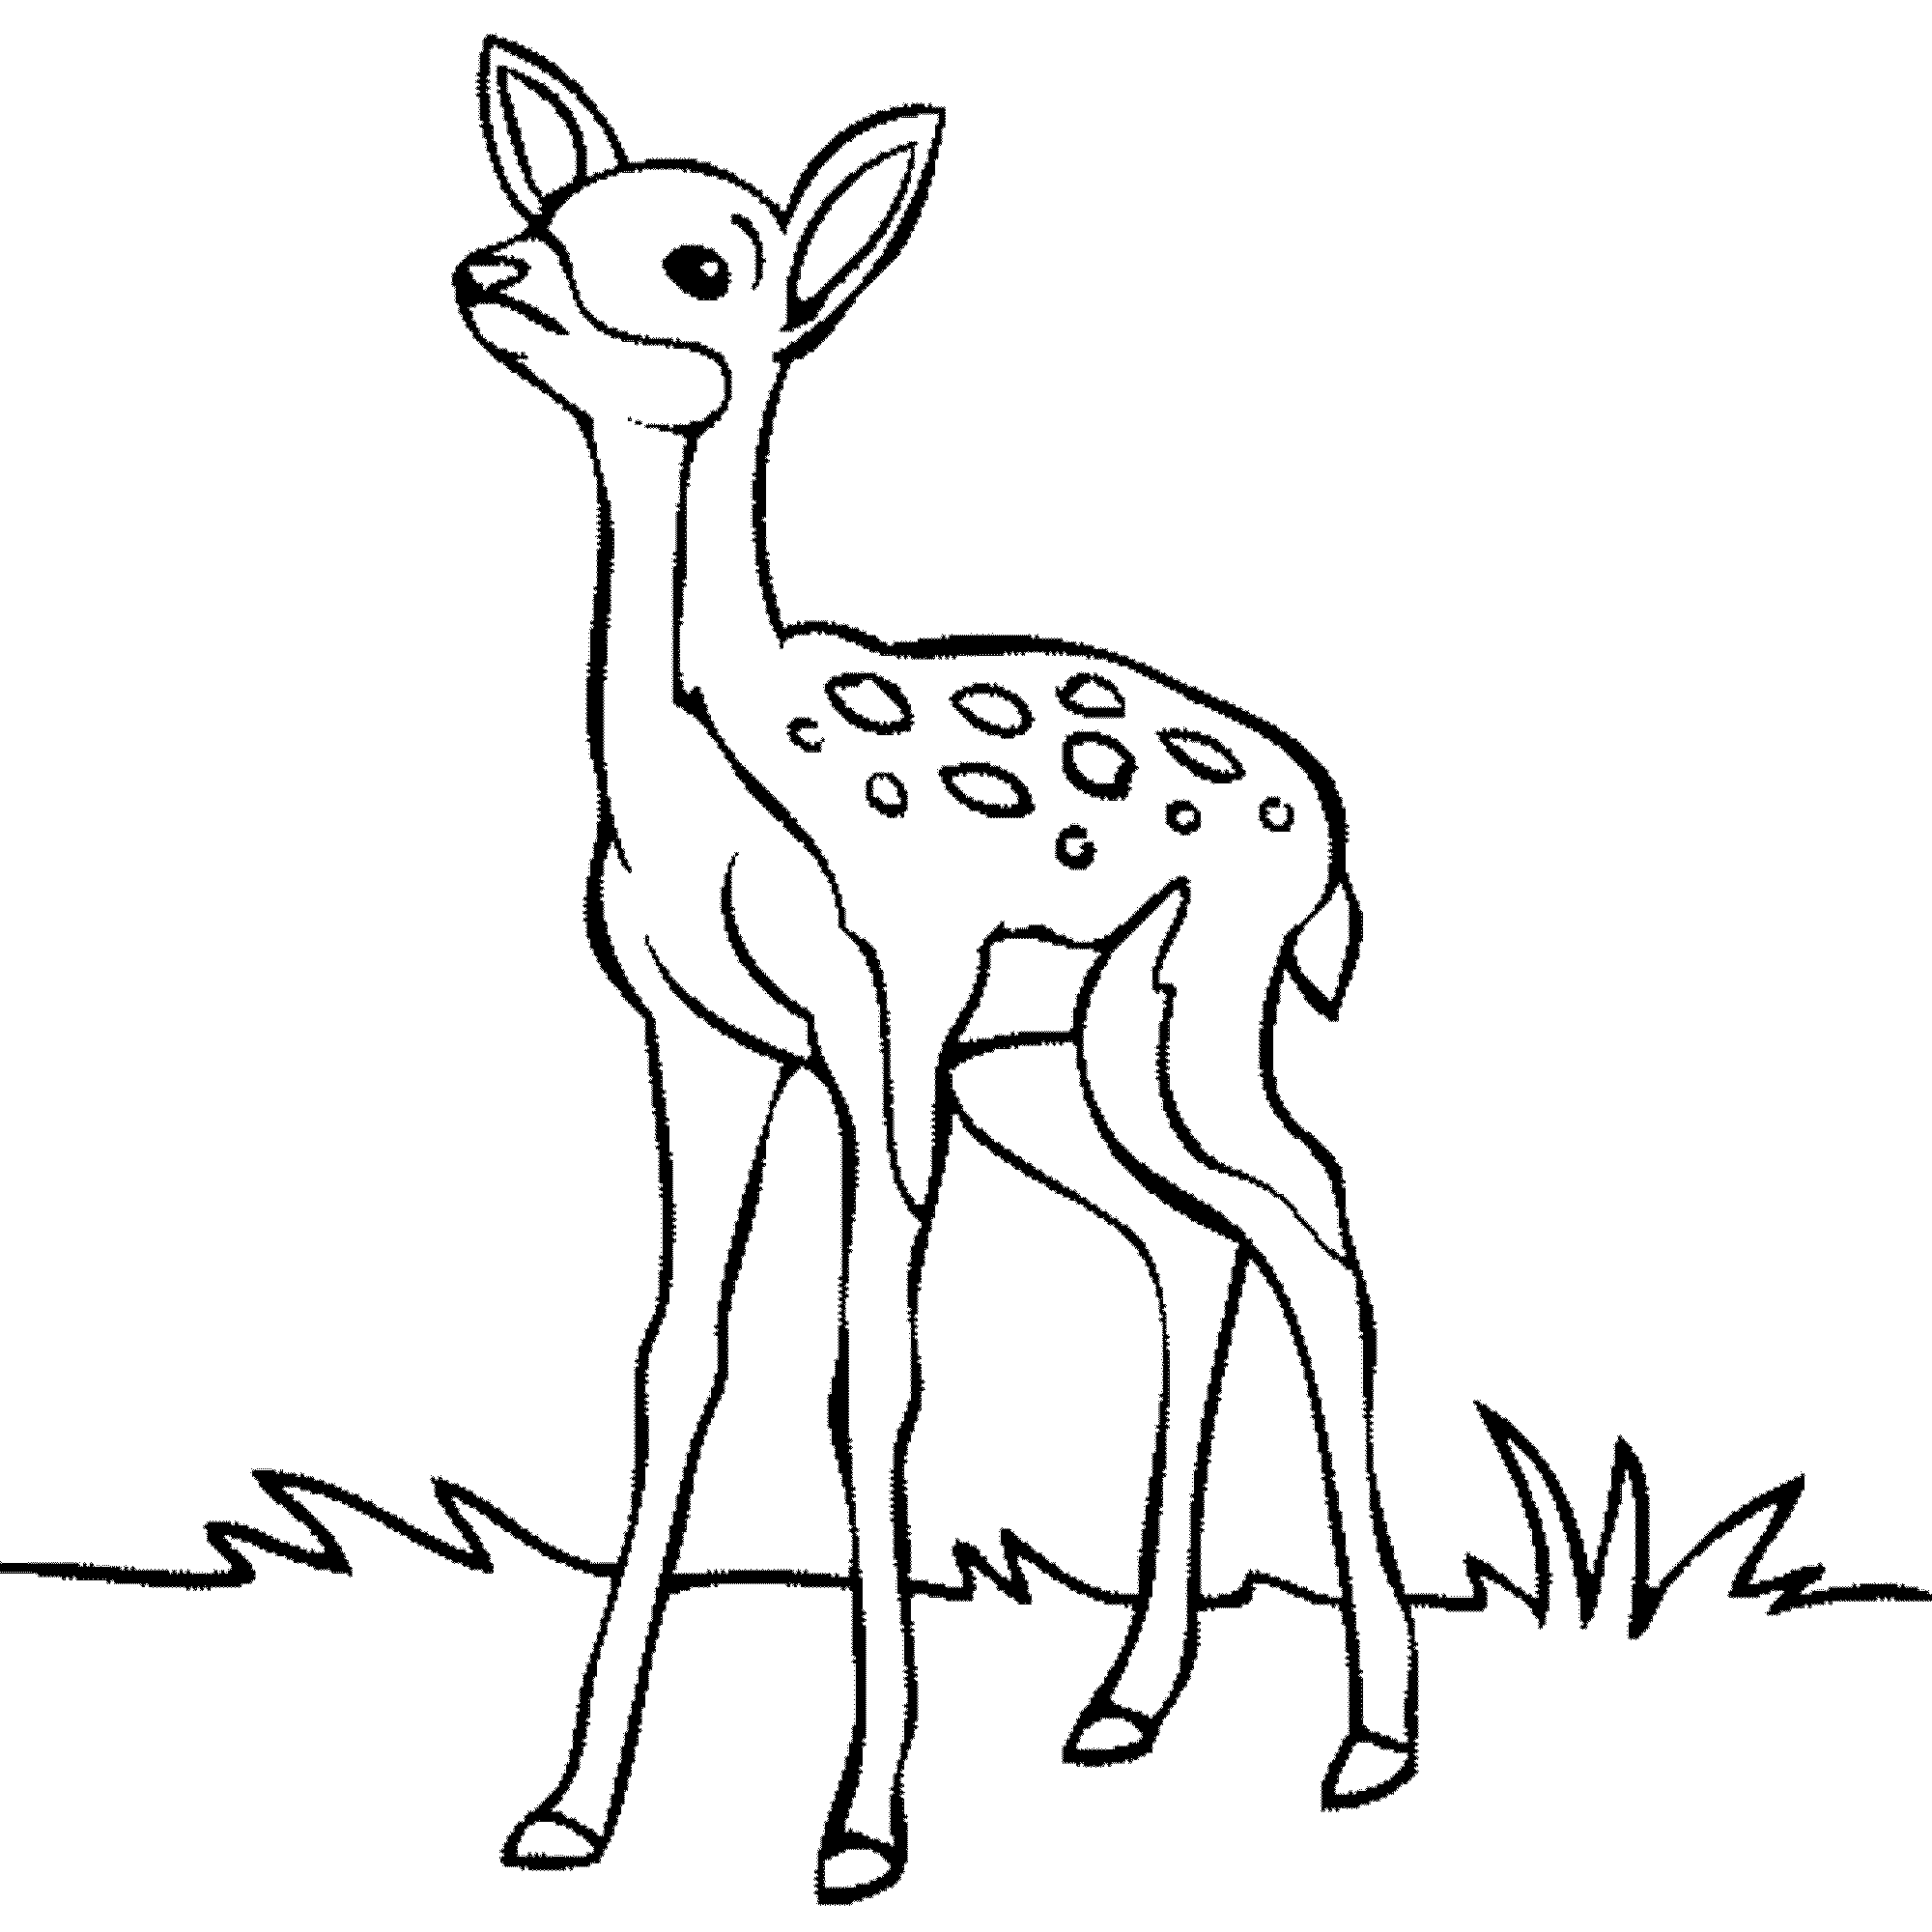 deer coloring page printable coloring pages for adults 15 free designs deer page coloring